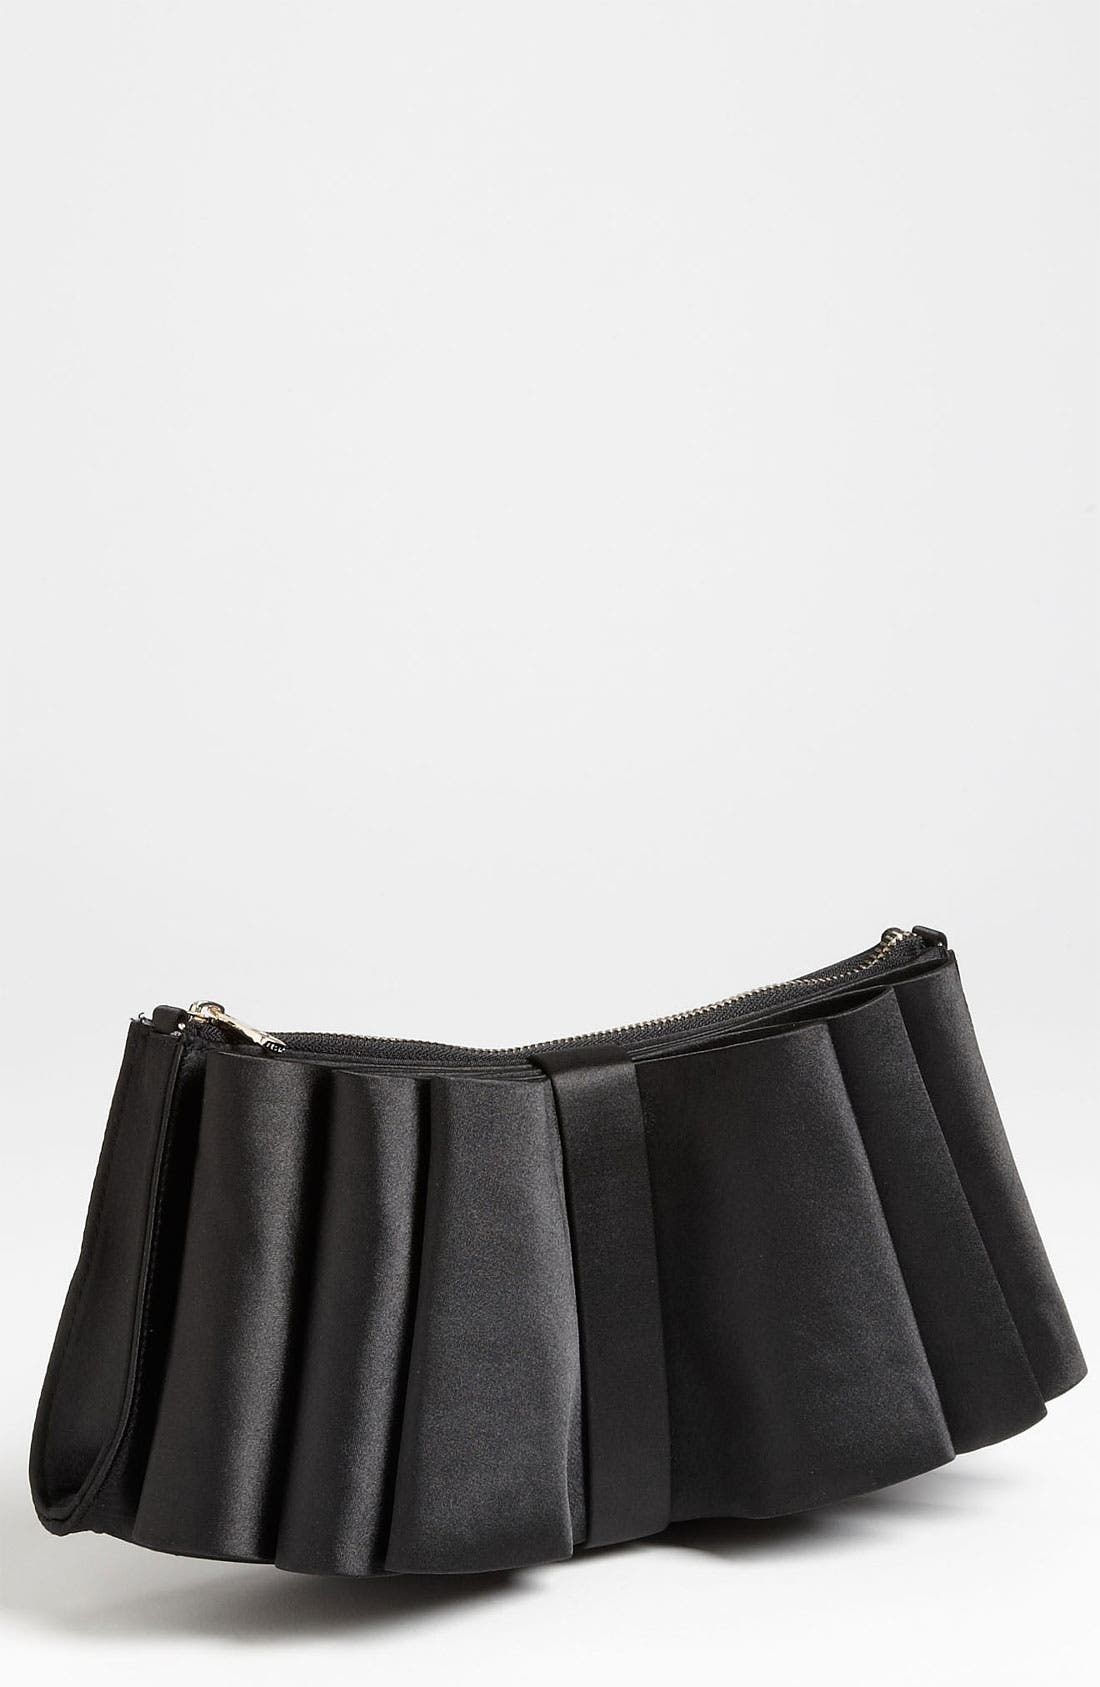 Main Image - Ted Baker London 'Origami Folds' Clutch